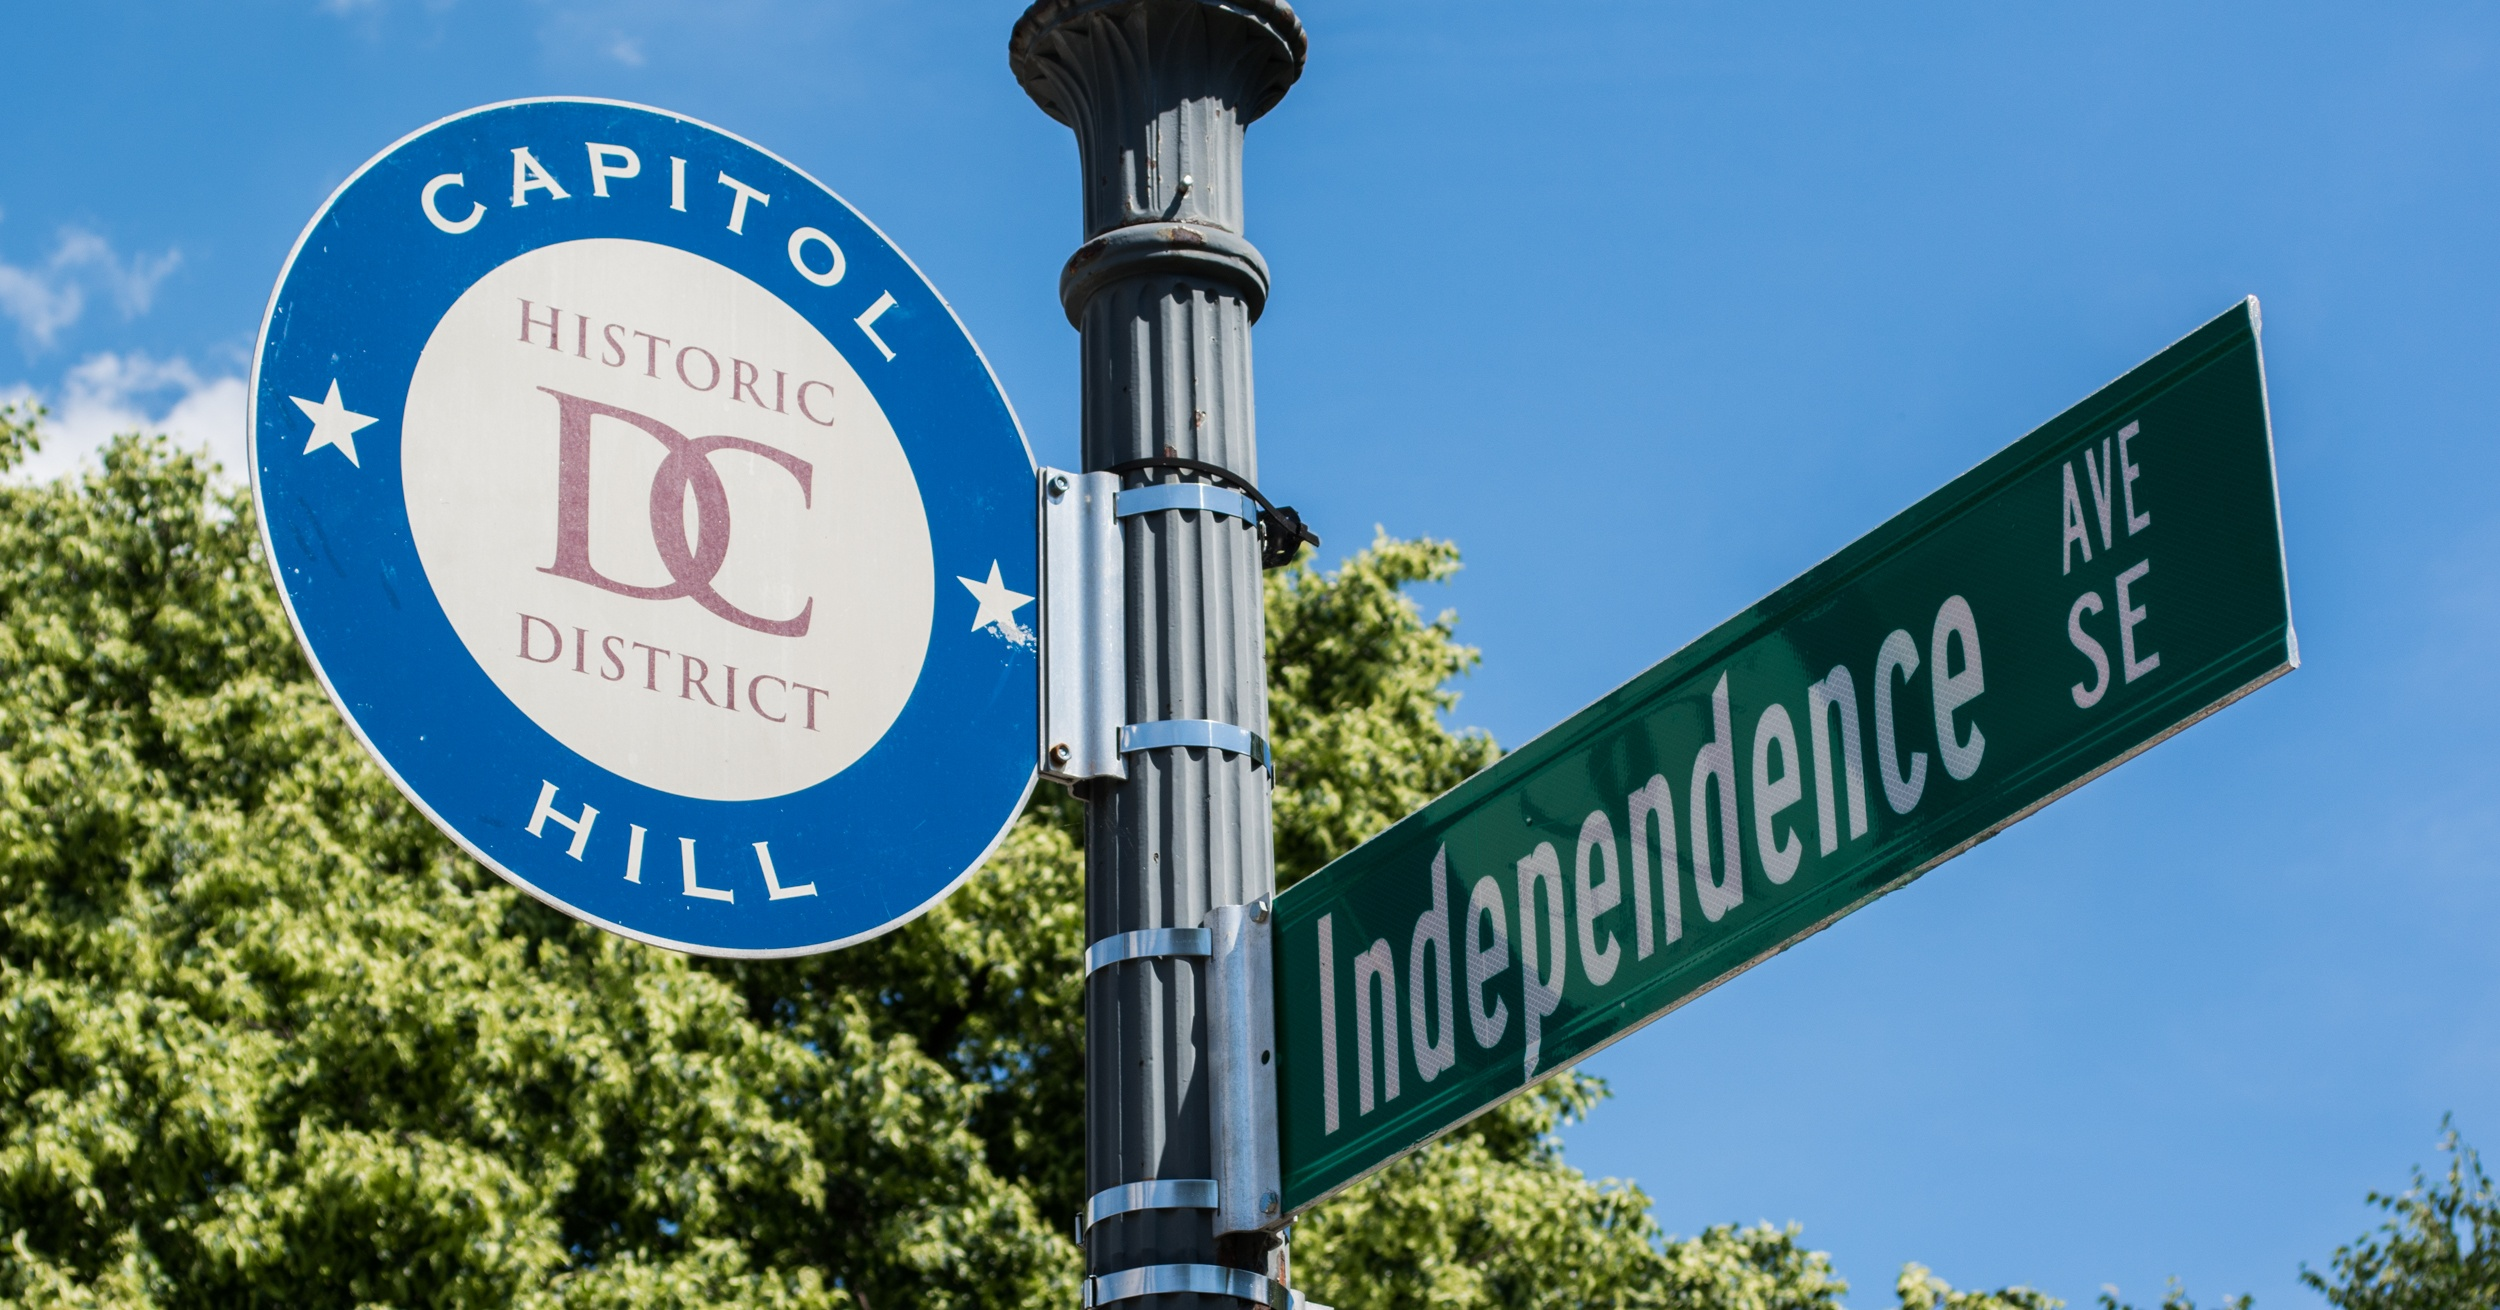 Capitol Hill Historic DC District Independence Ave Street Sign